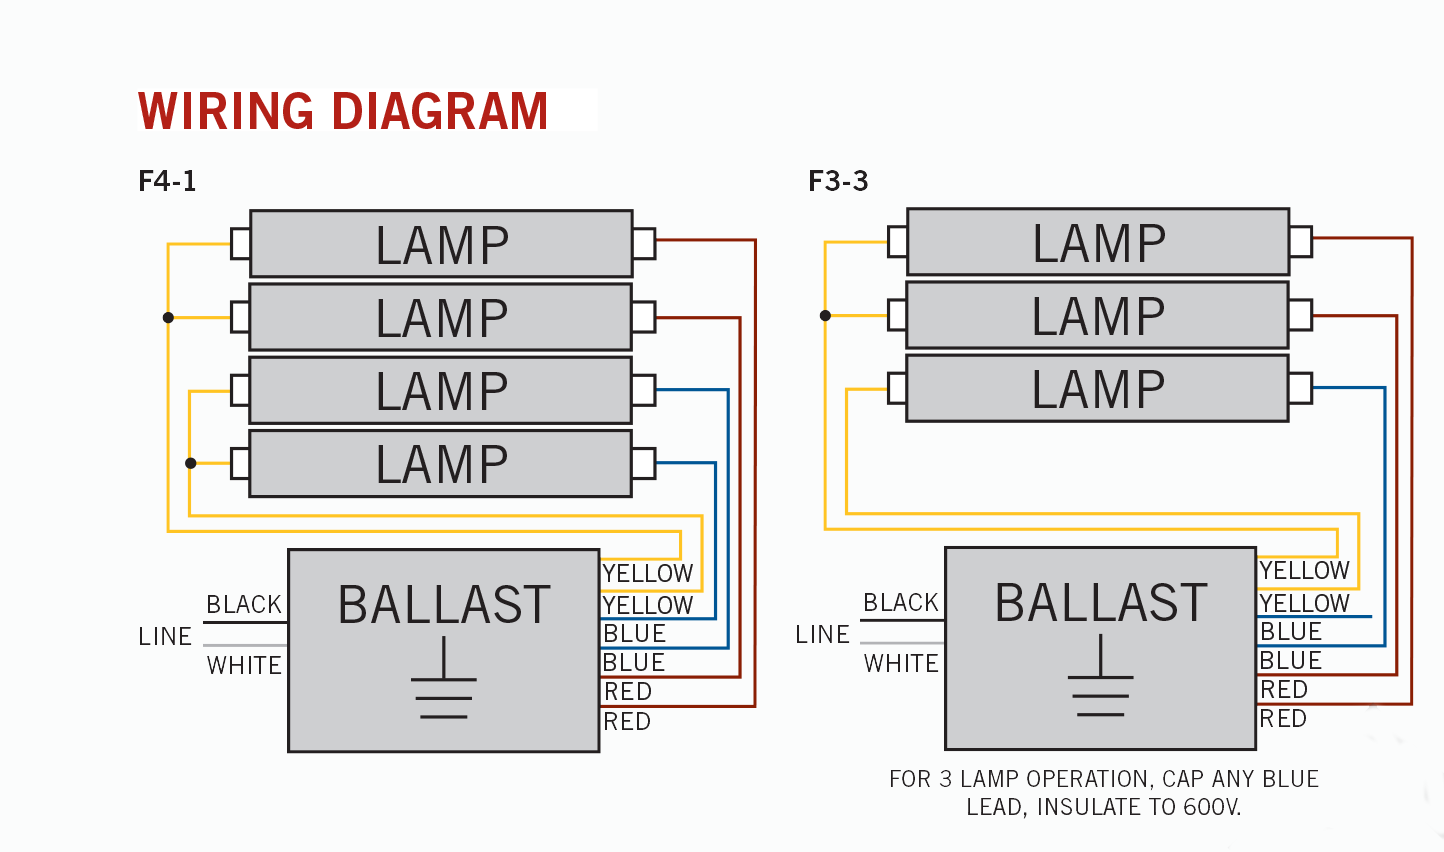 Lamp Fluorescent Fixture Wiring Diagram on